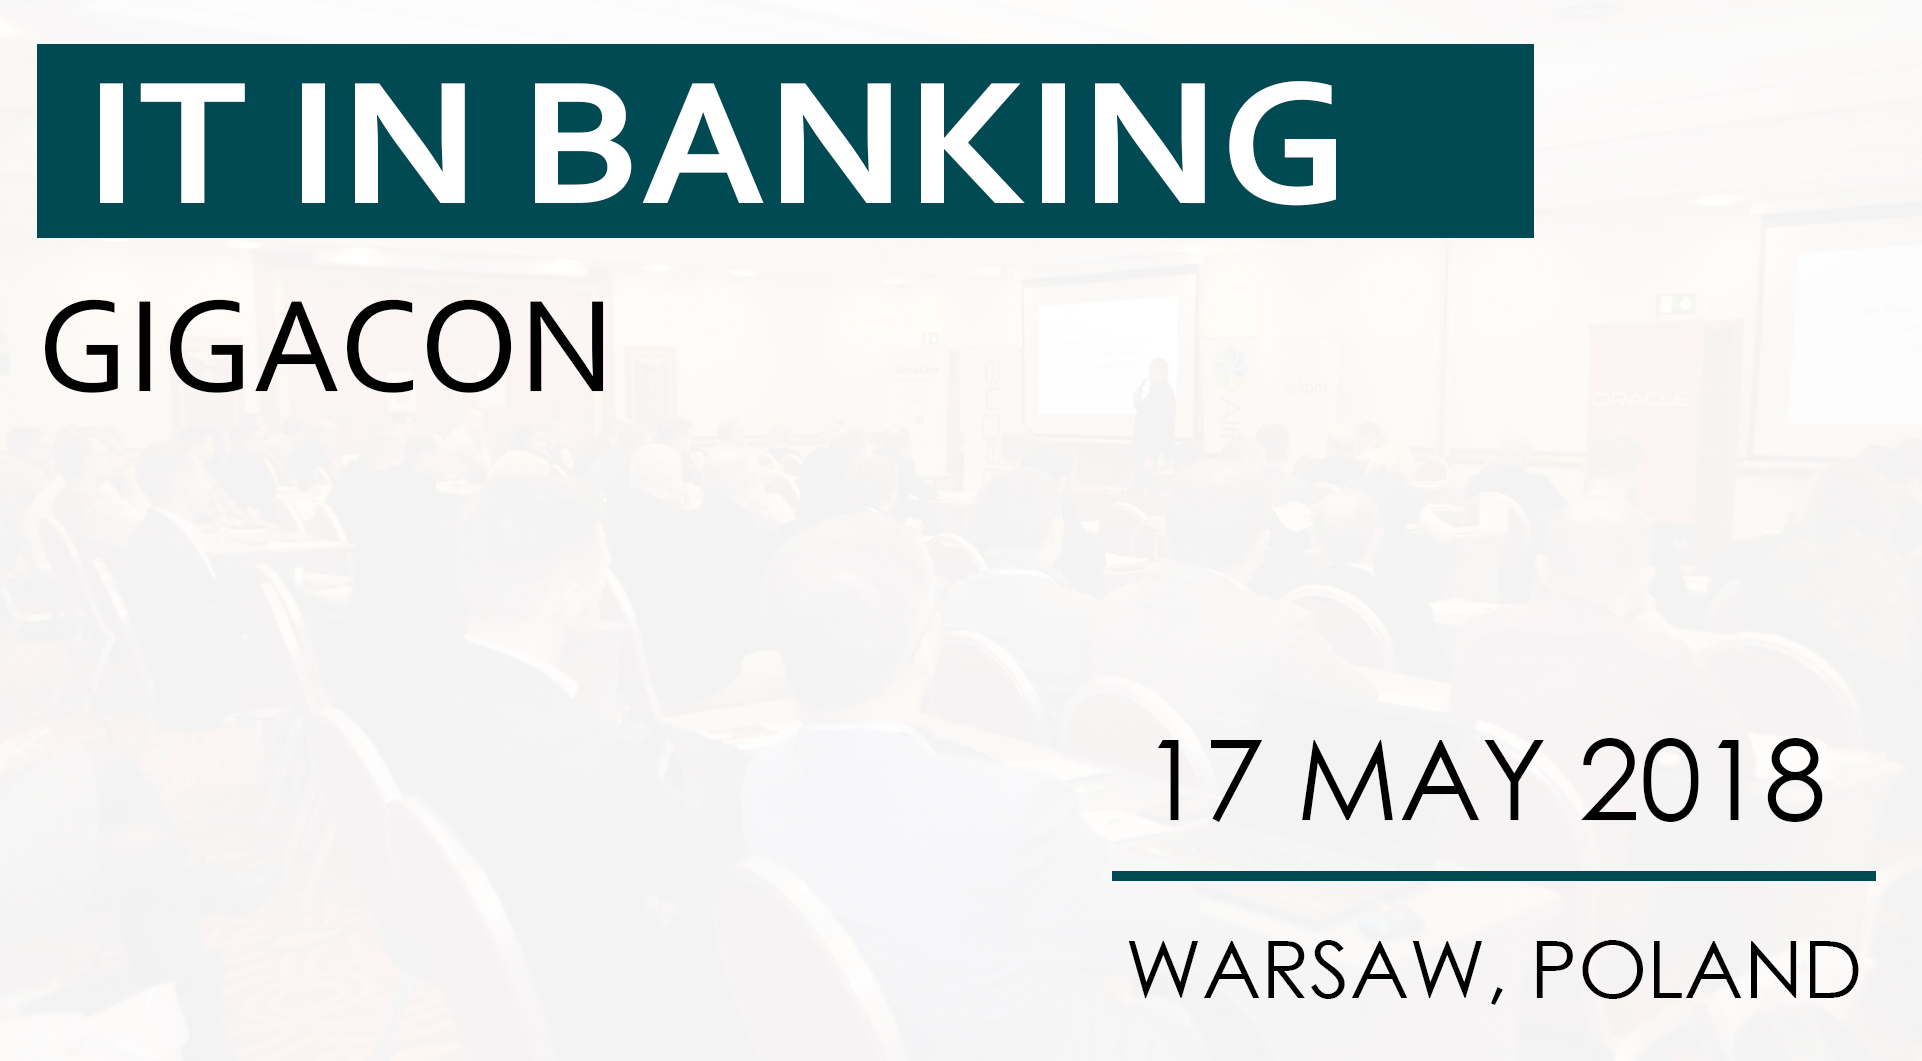 IT in banking Gigacon